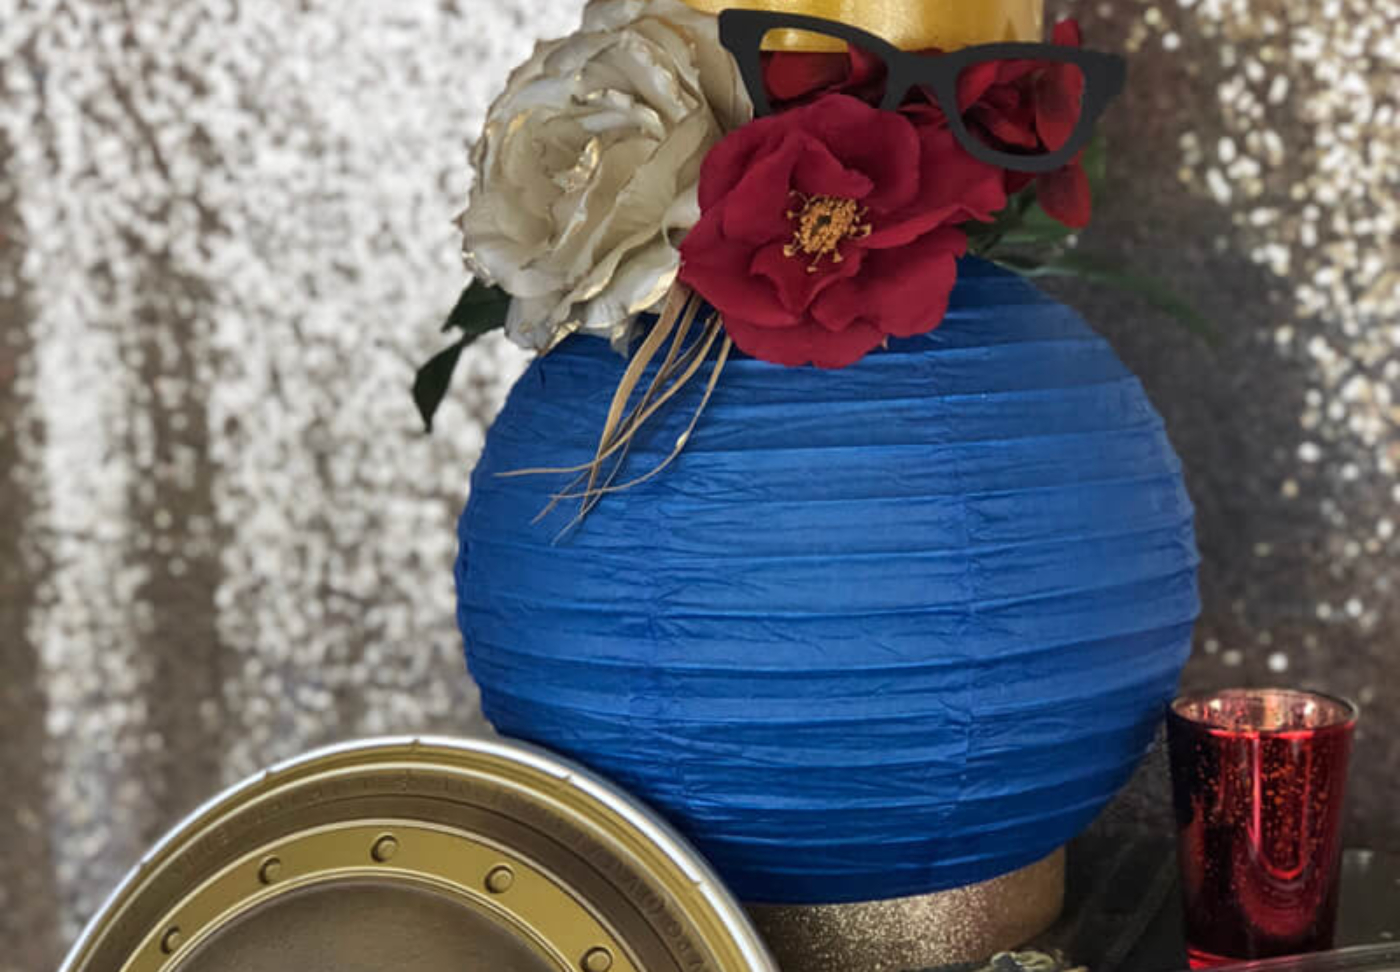 Wonder woman party display with blue paper lantern filled with flowers and topped with a crown for a floral lantern centerpiece.